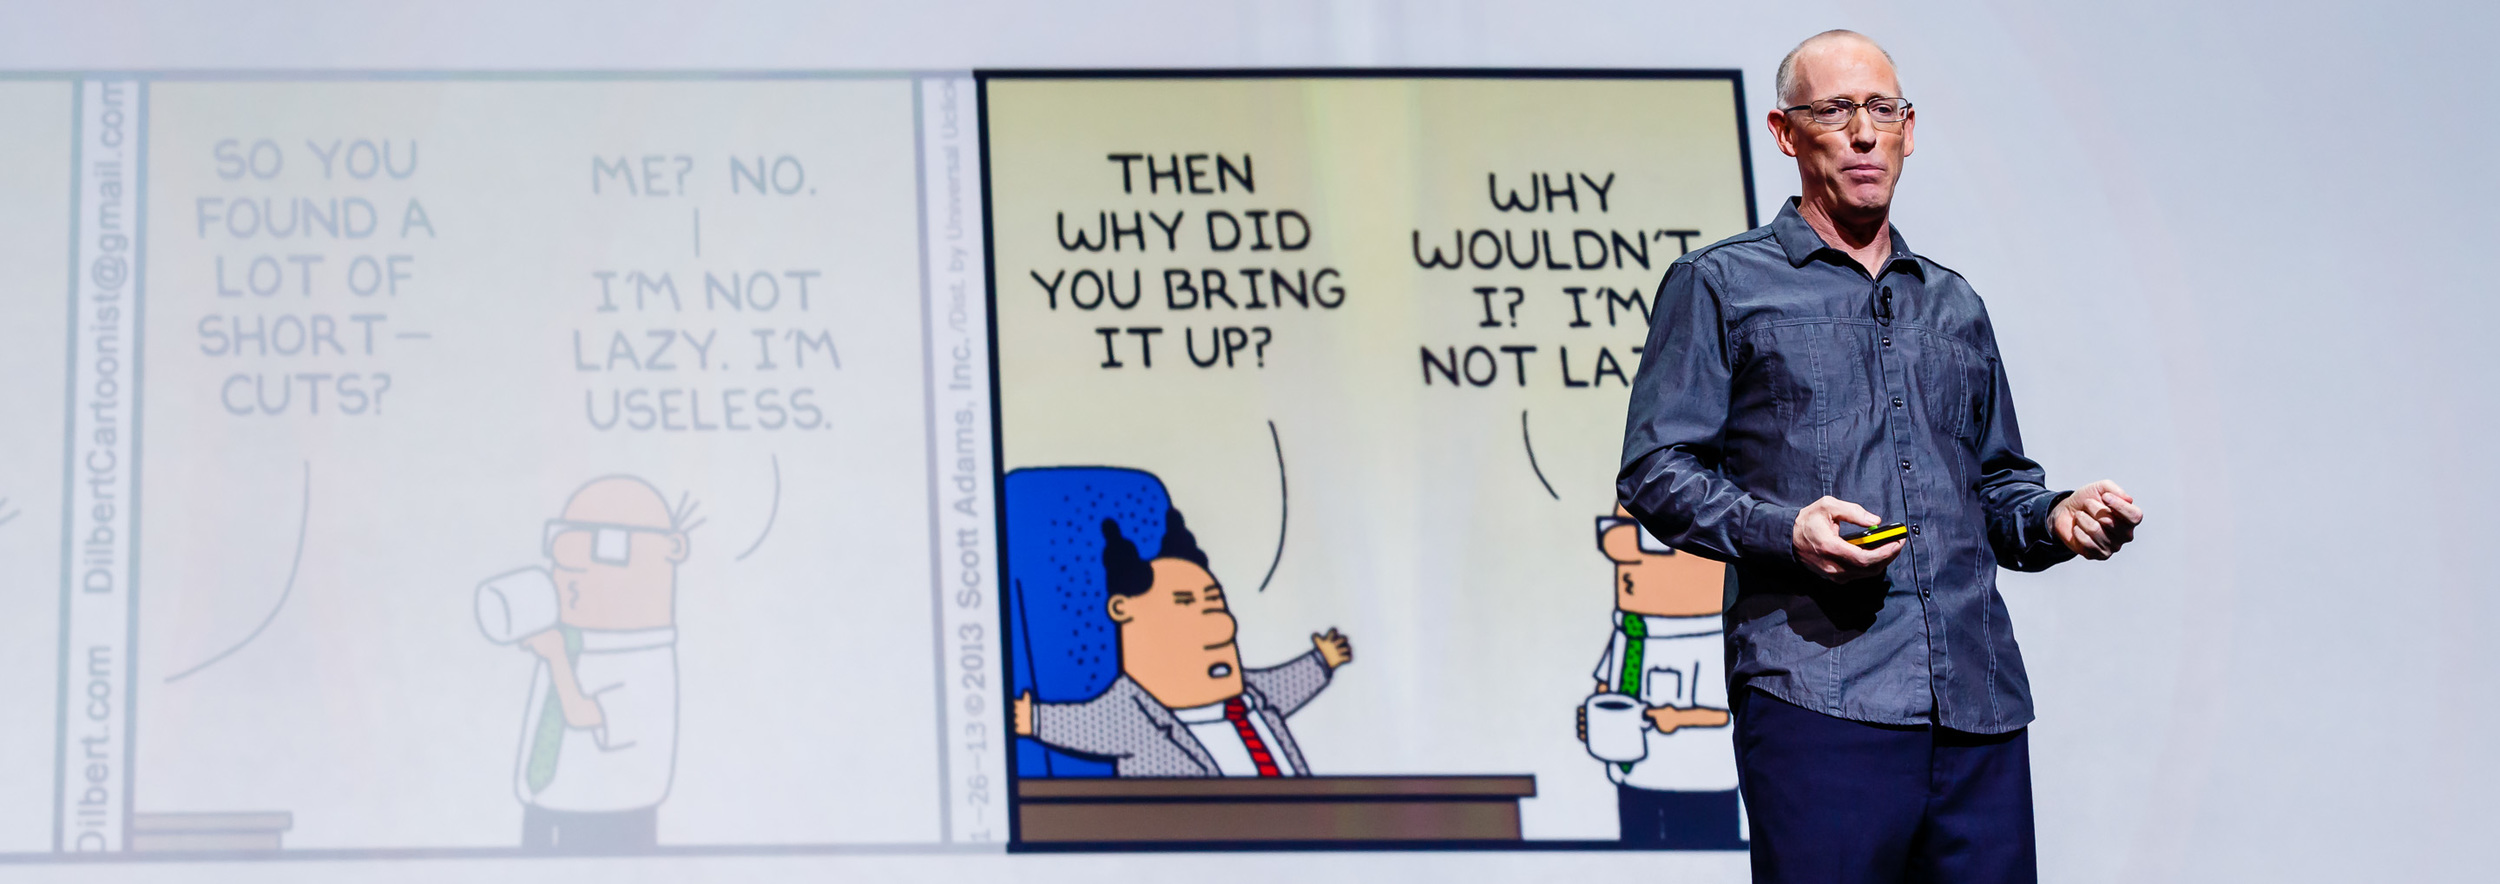 20140128095143 5185 MON IBM CONNECT 2014 LOW RES SCOTT ADAMS  DILBERT.JPG